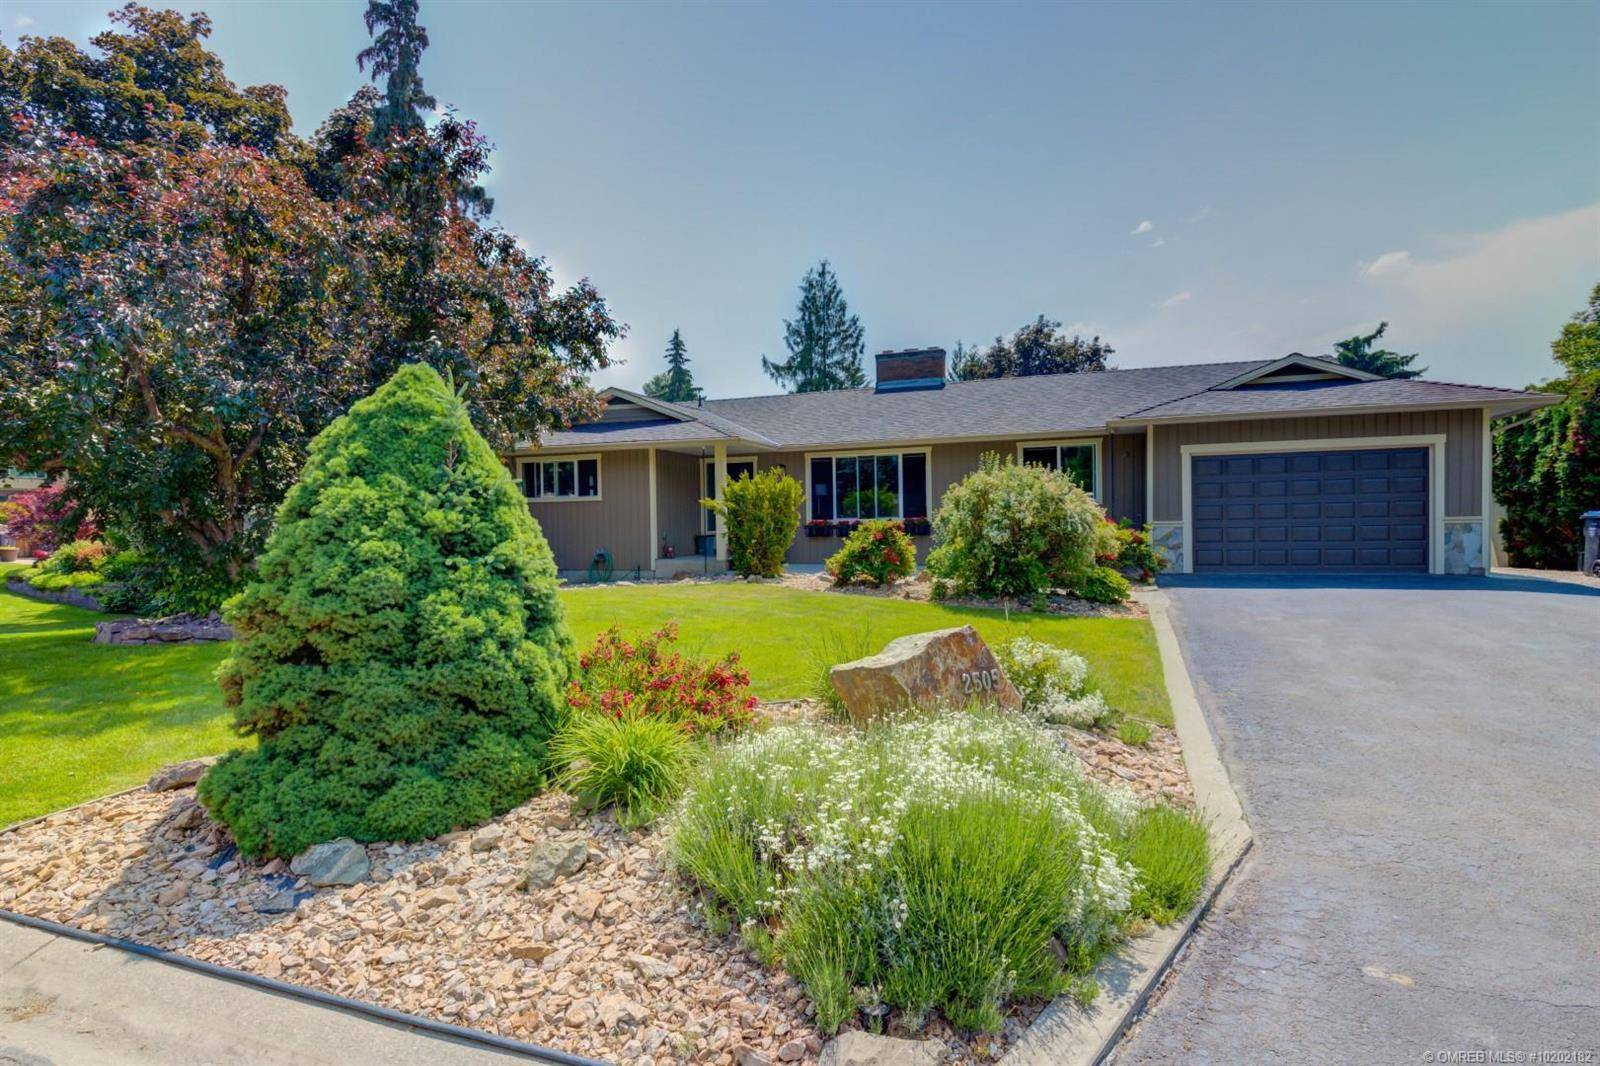 House for sale at 2505 O'reilly Rd Kelowna British Columbia - MLS: 10202182